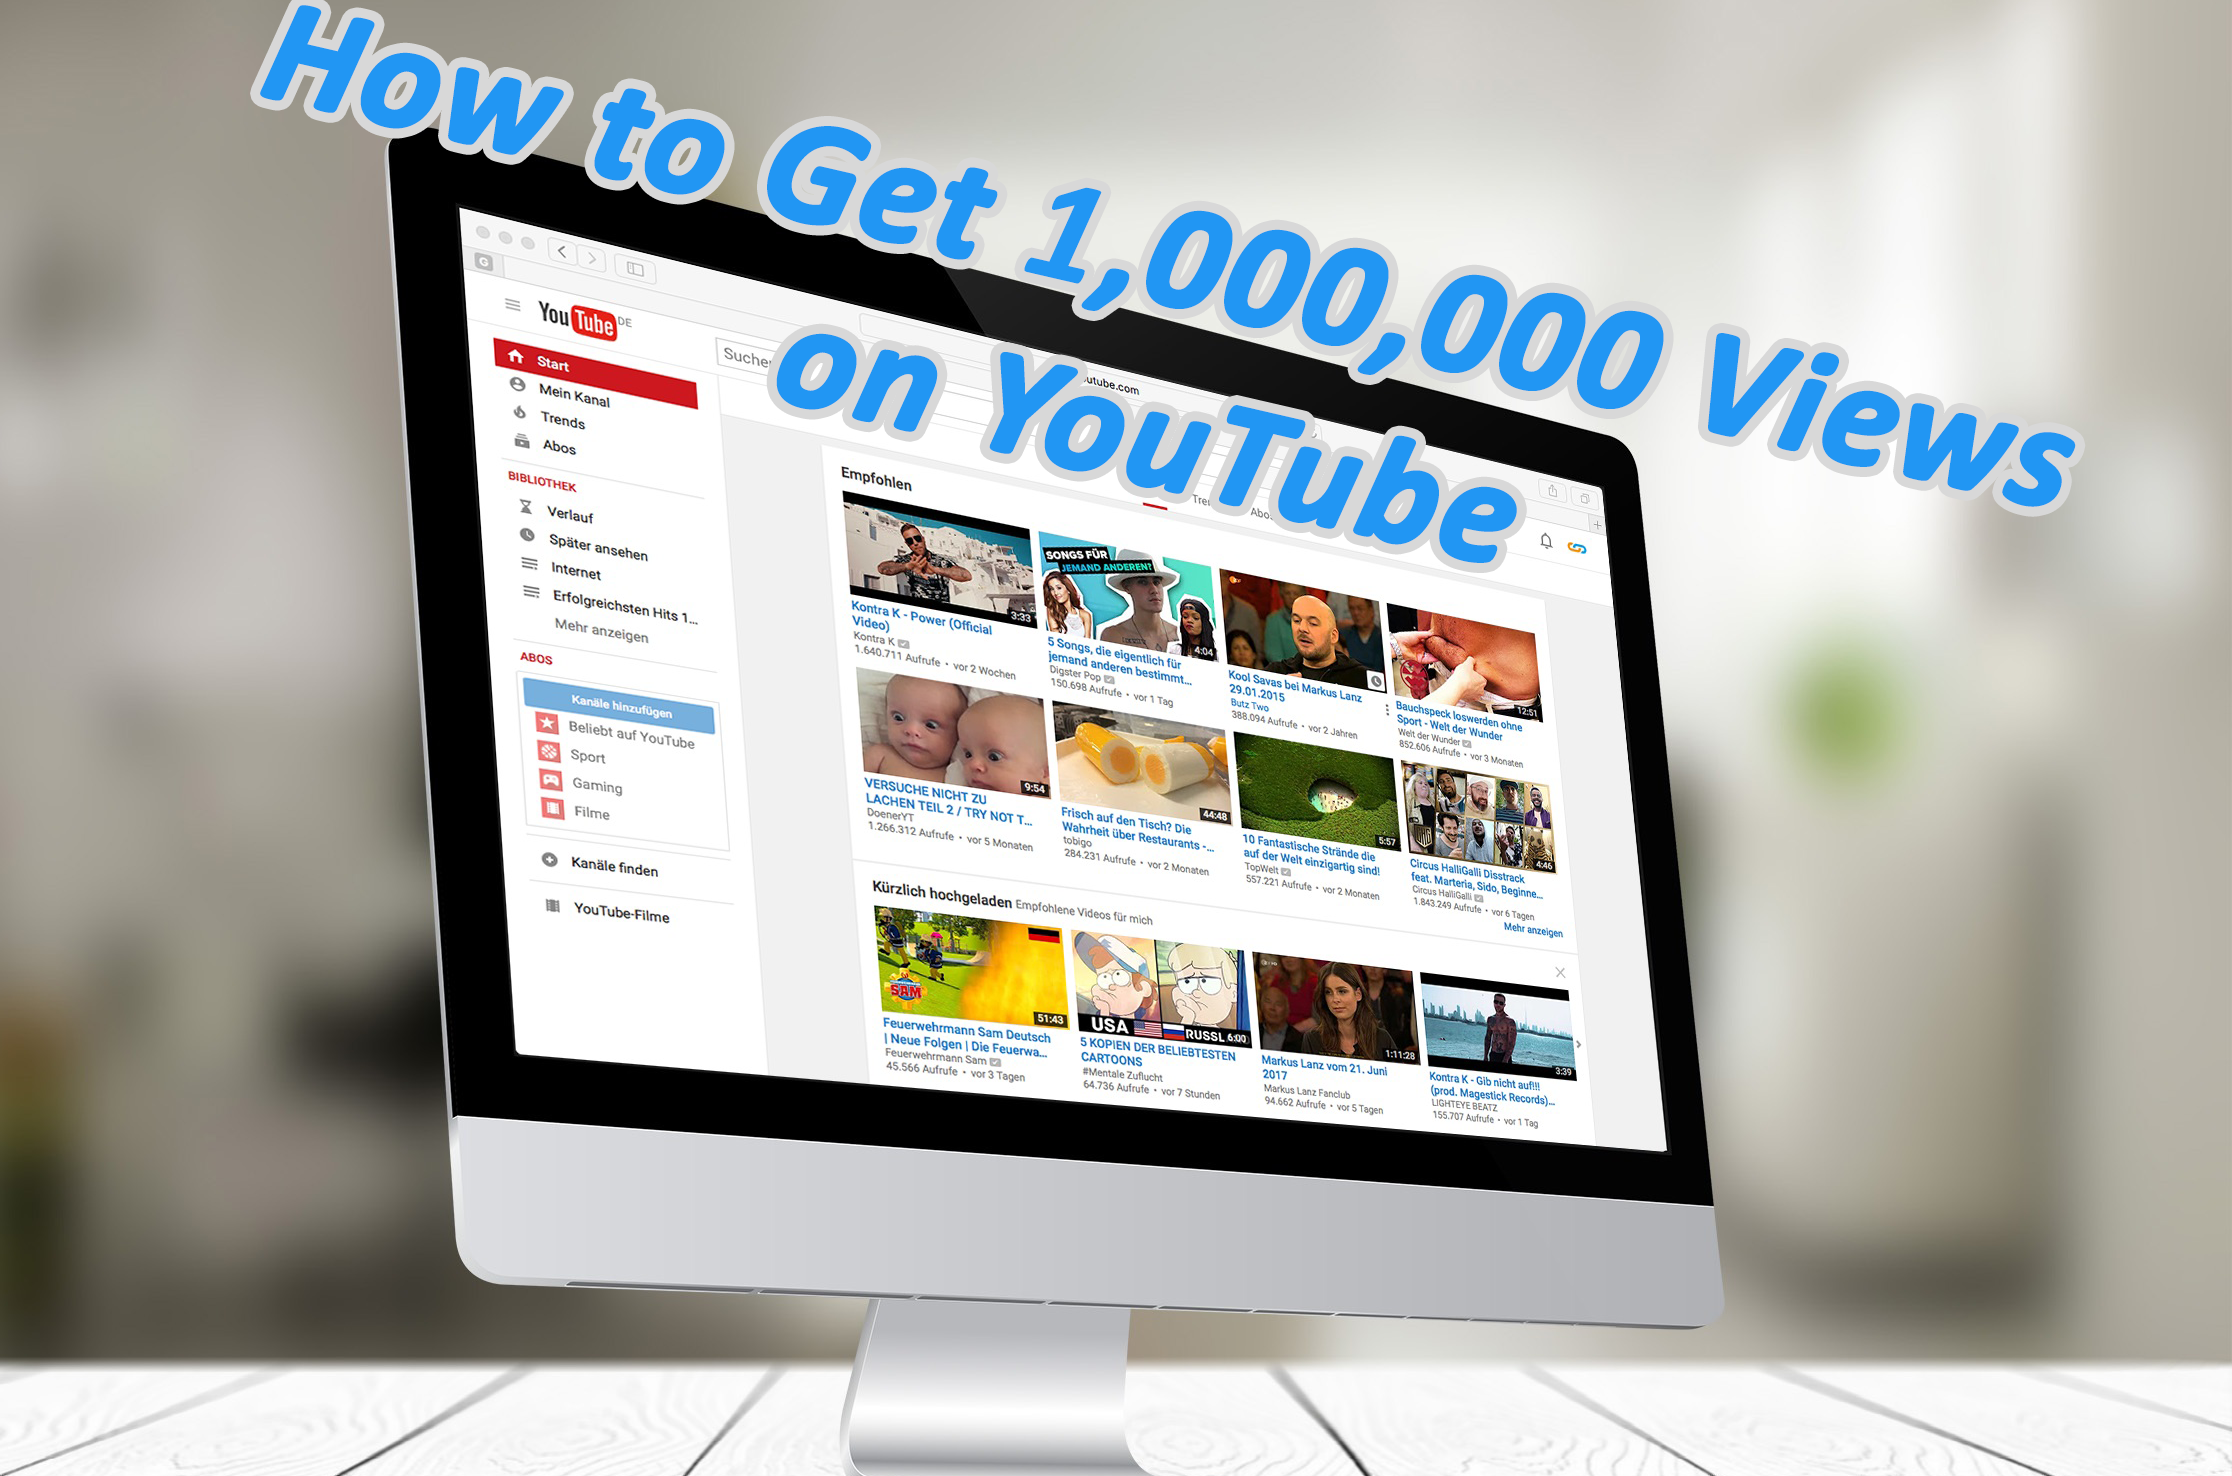 The first 5 steps to getting one million views on YouTube